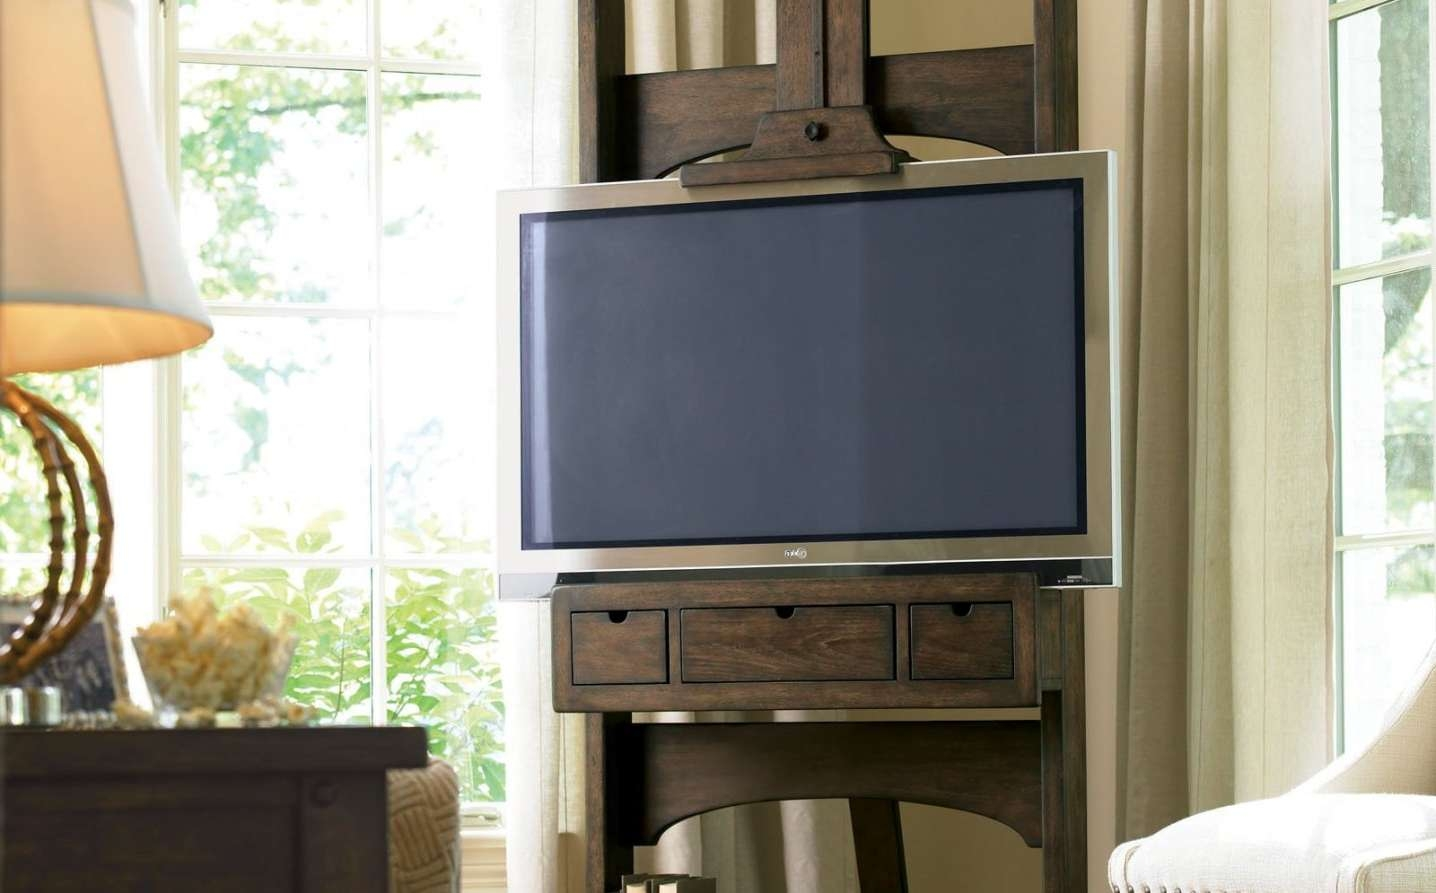 Tv : Exotic Easel Tv Stands For Flat Screens Gripping Easel Tv Regarding Easel Tv Stands For Flat Screens (View 7 of 15)